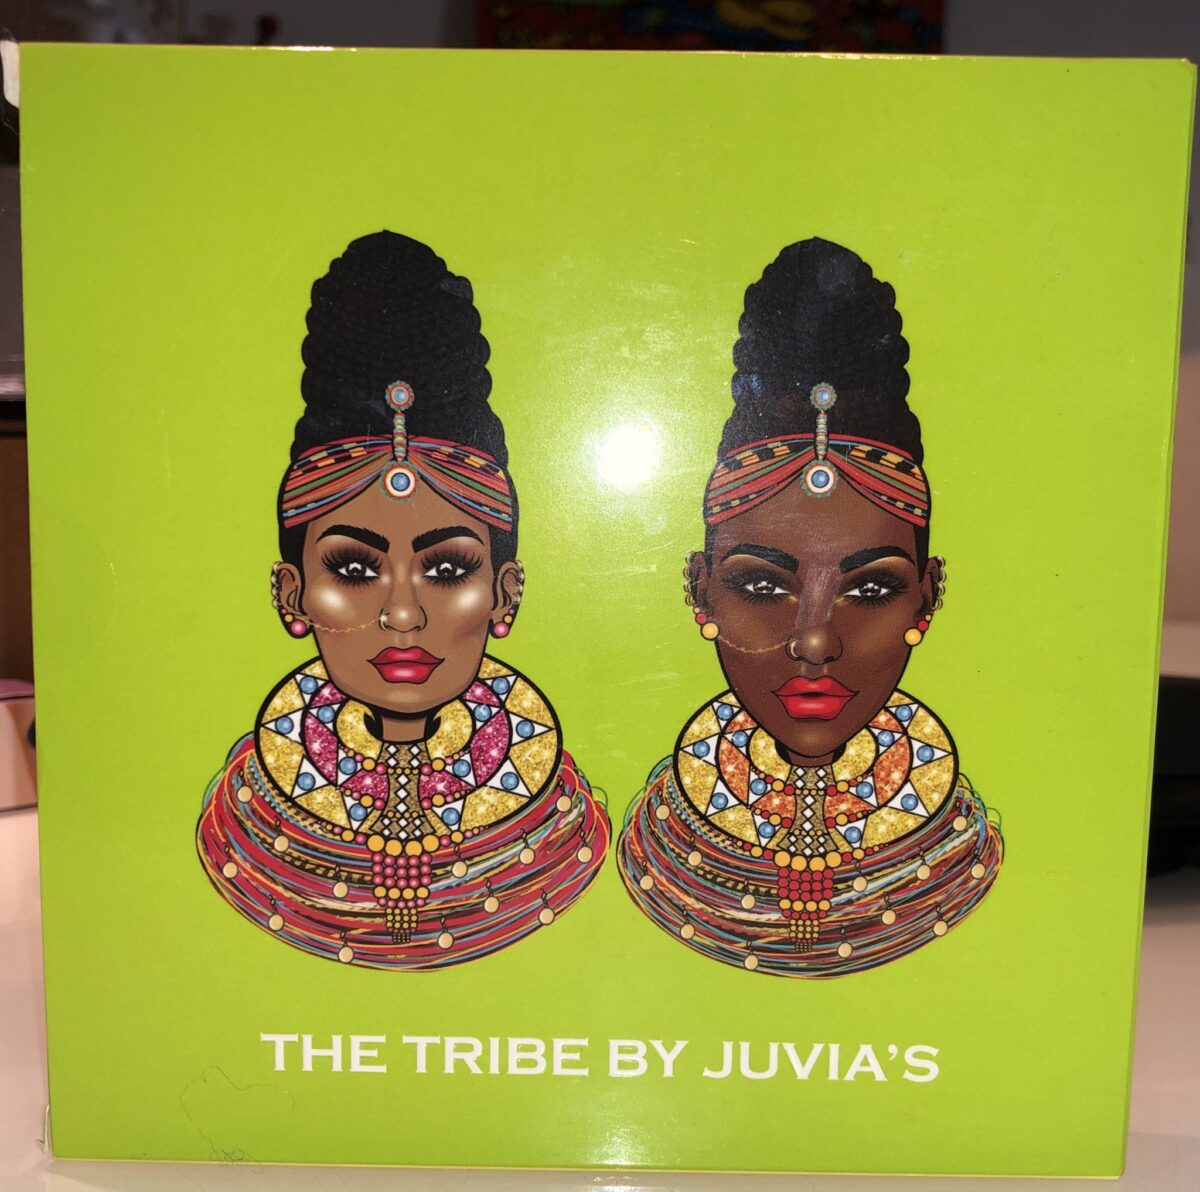 THE OUTER BOX FOR THE JUVIA'S PLACE THE TRIBE EYESHADOW PALETTE